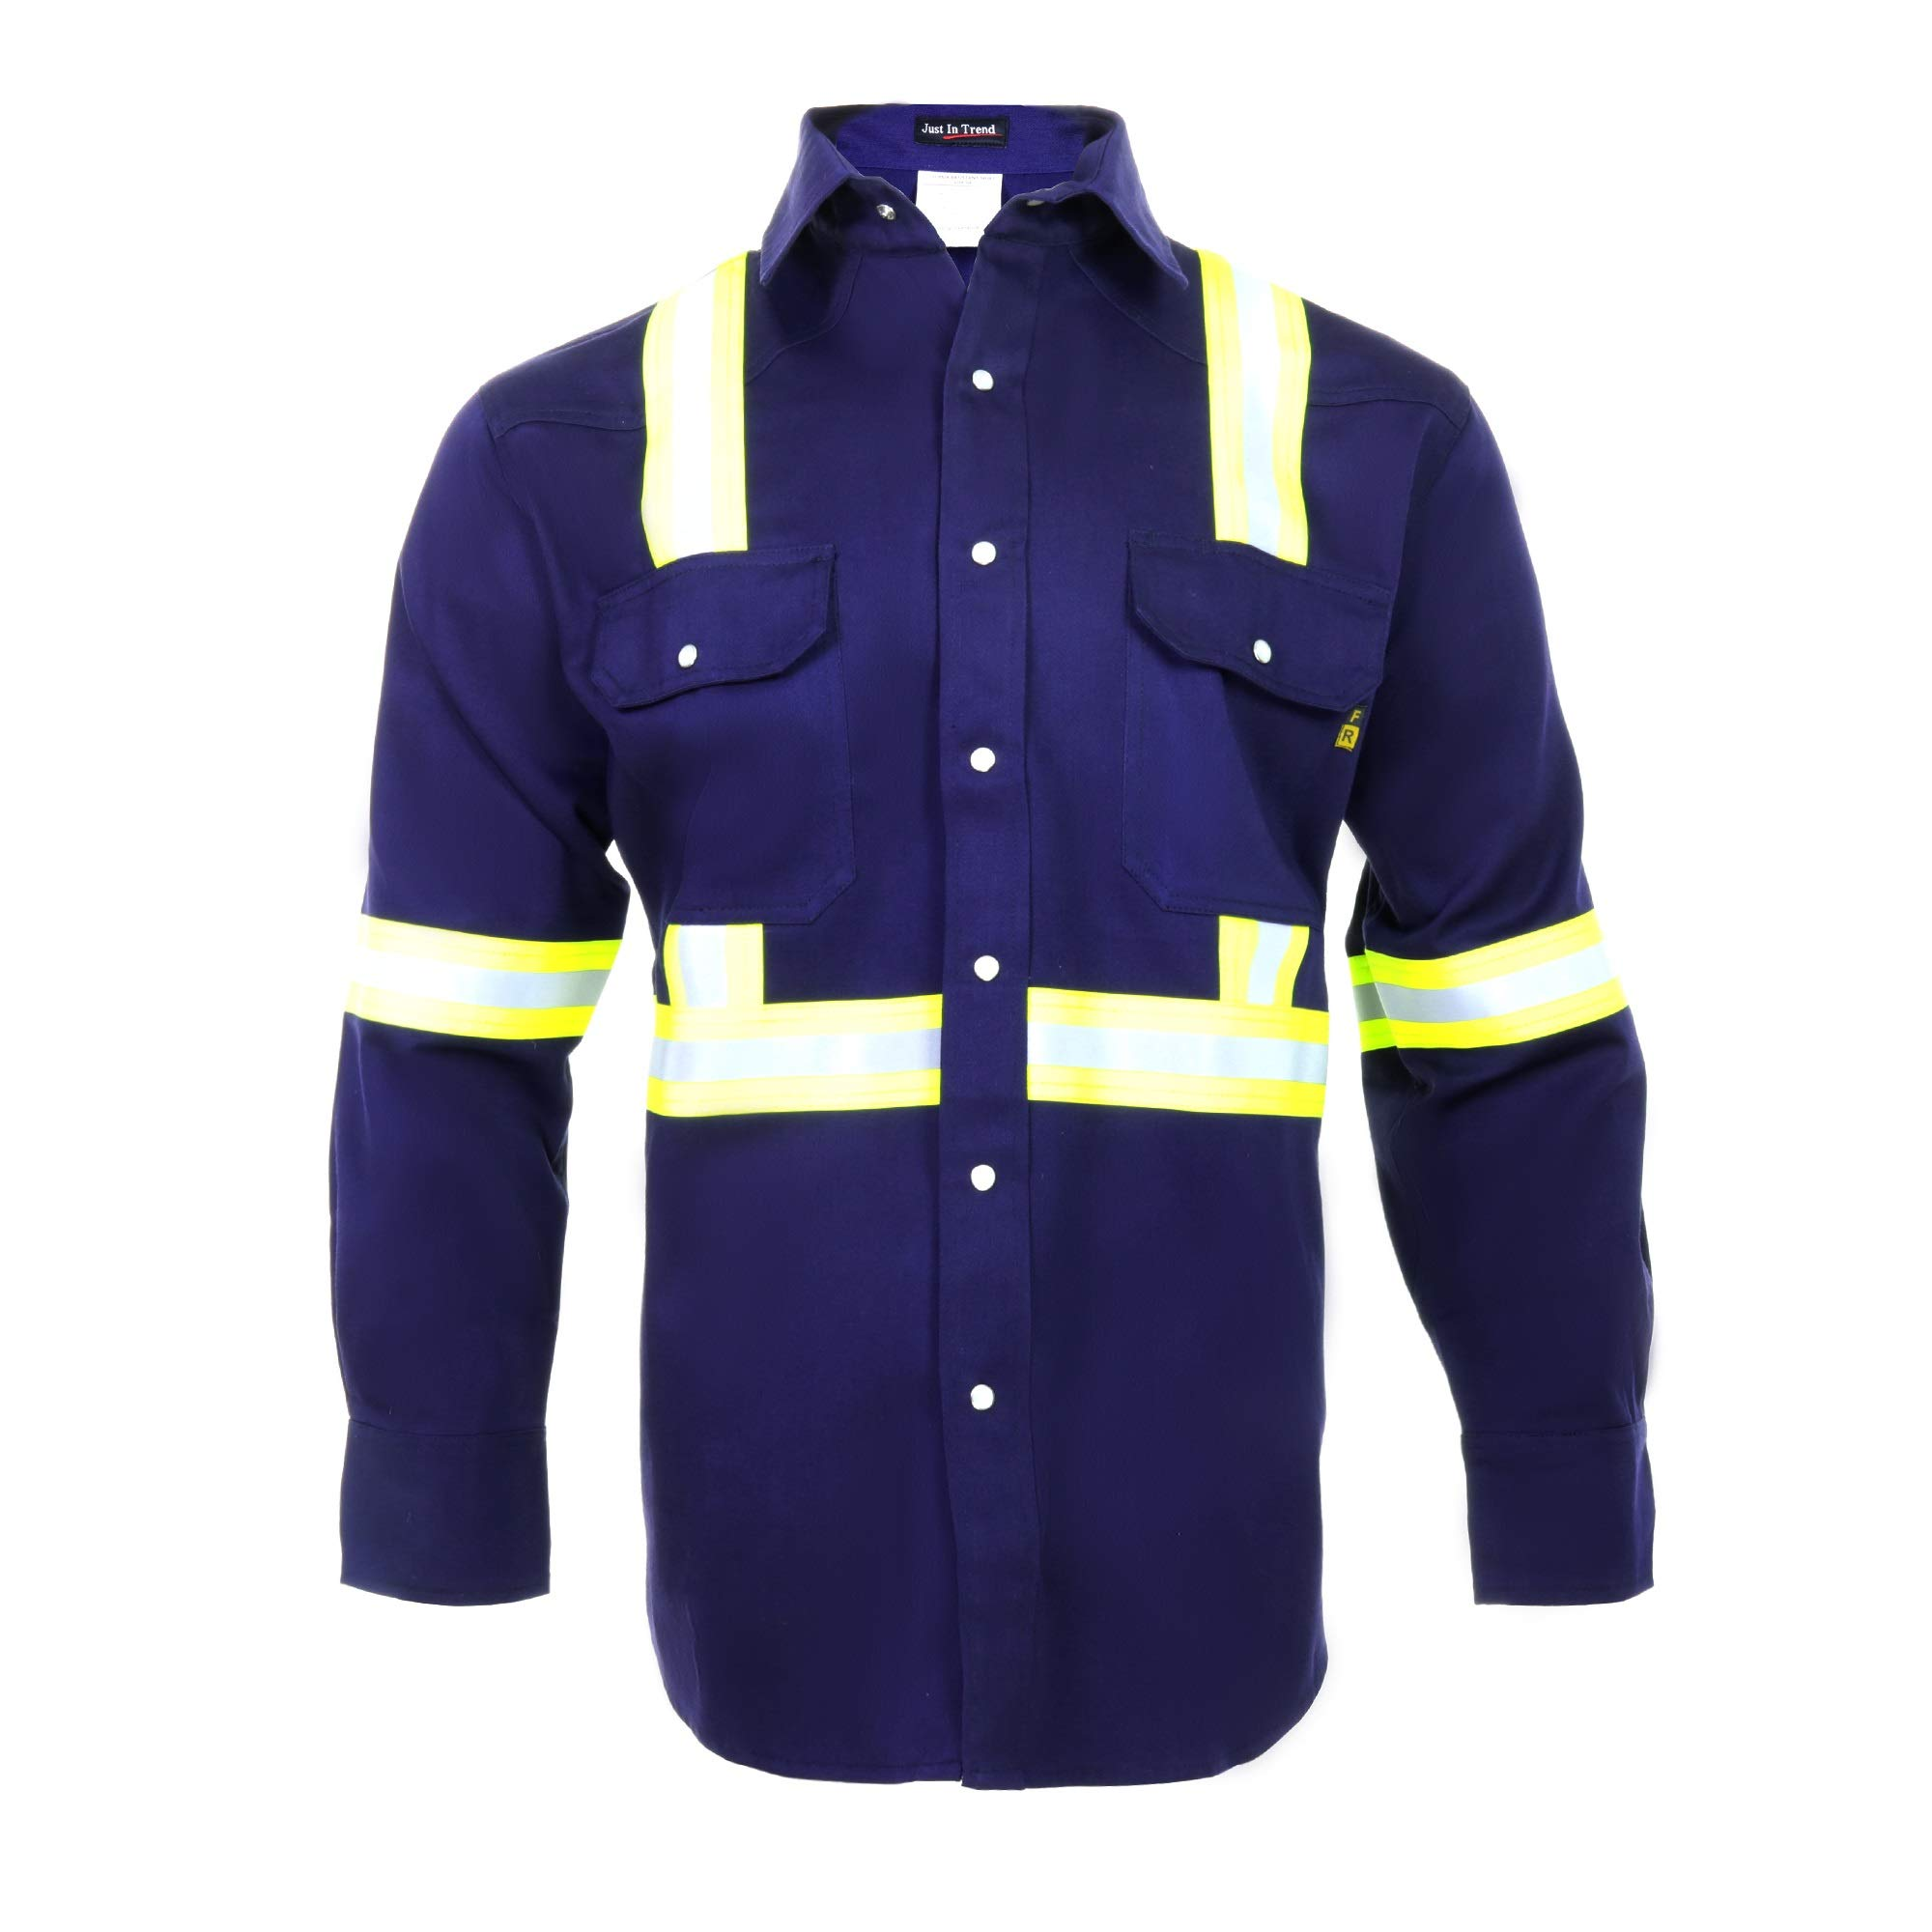 Flame Resistant High Visibility Hi Vis Shirt - 100% C - 7 oz (X-Large, Navy Blue)